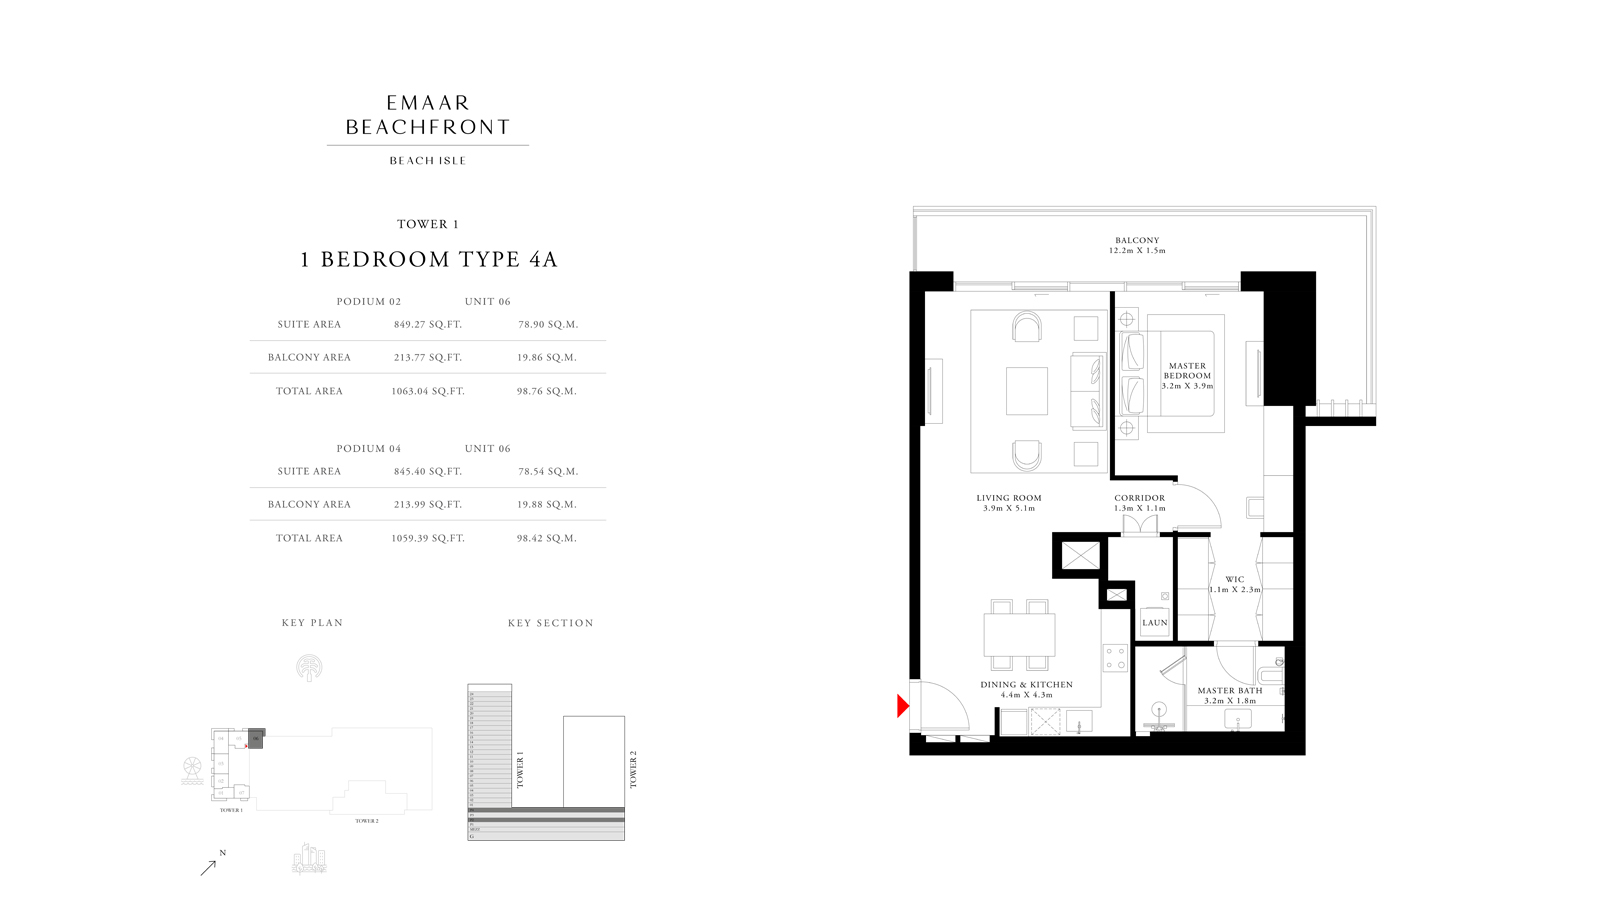 1 Bedroom Type 4A Tower 1, Size 1059 sq ft